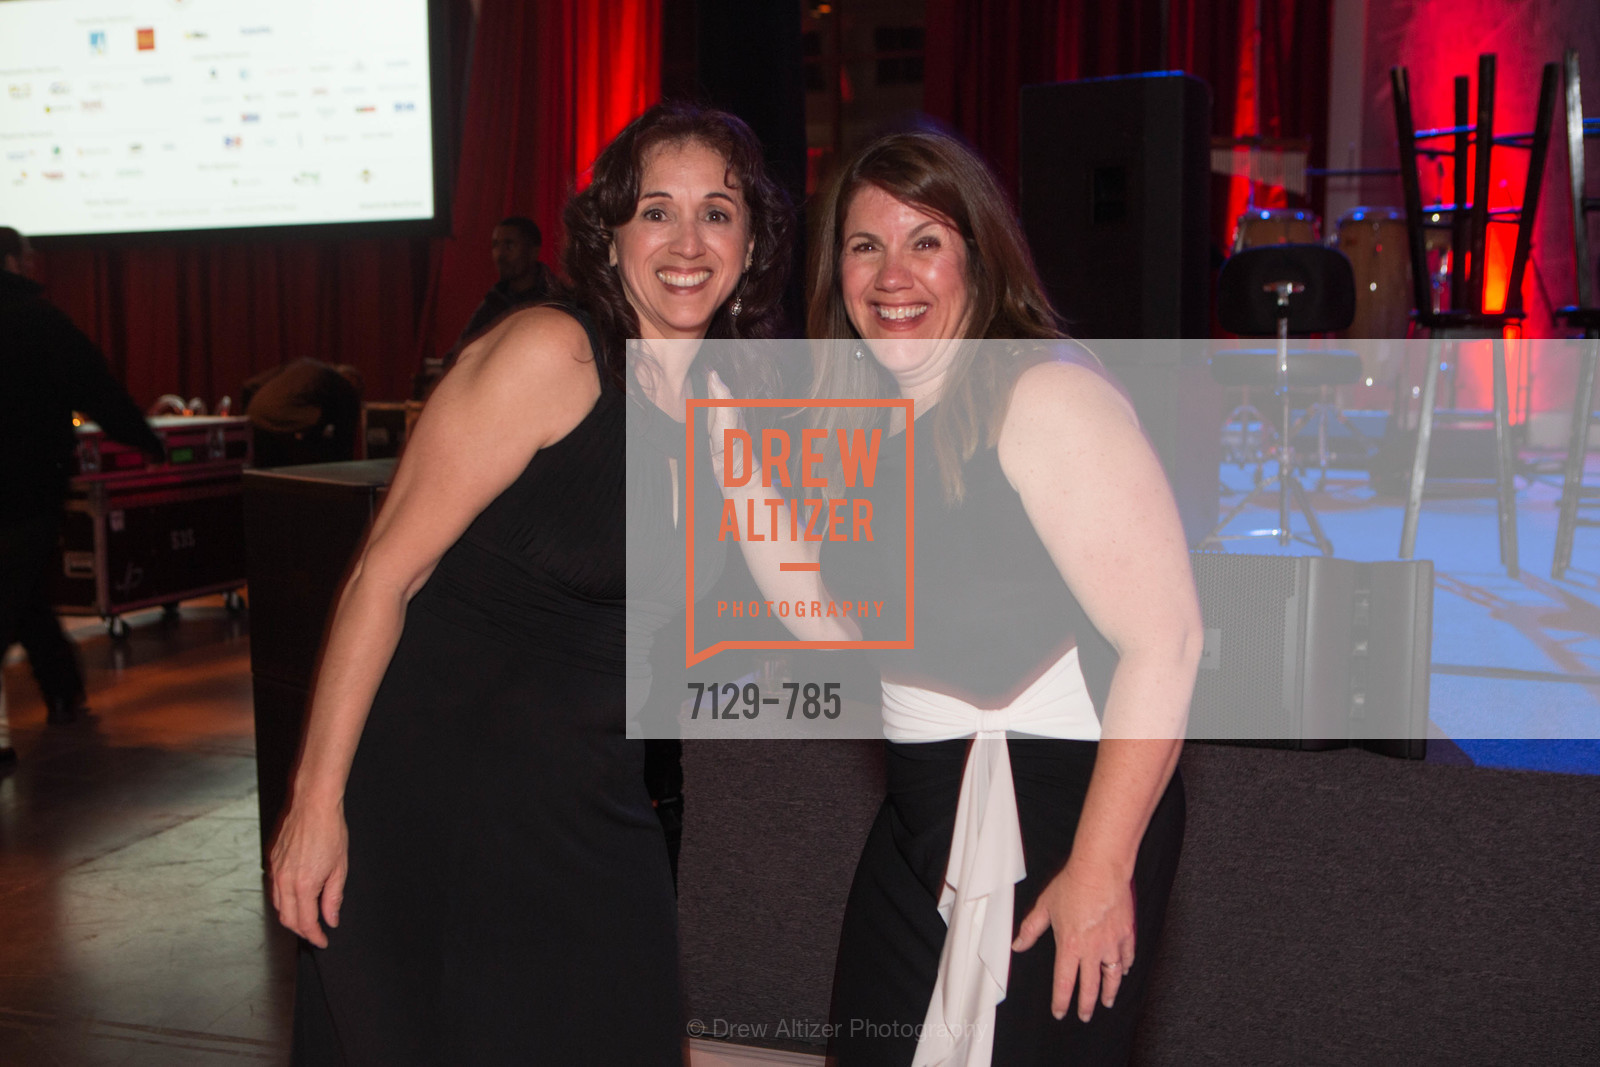 Lisa Hernandez, Julie Weigand, 2015 RED CROSS Gala, US, April 11th, 2015,Drew Altizer, Drew Altizer Photography, full-service agency, private events, San Francisco photographer, photographer california